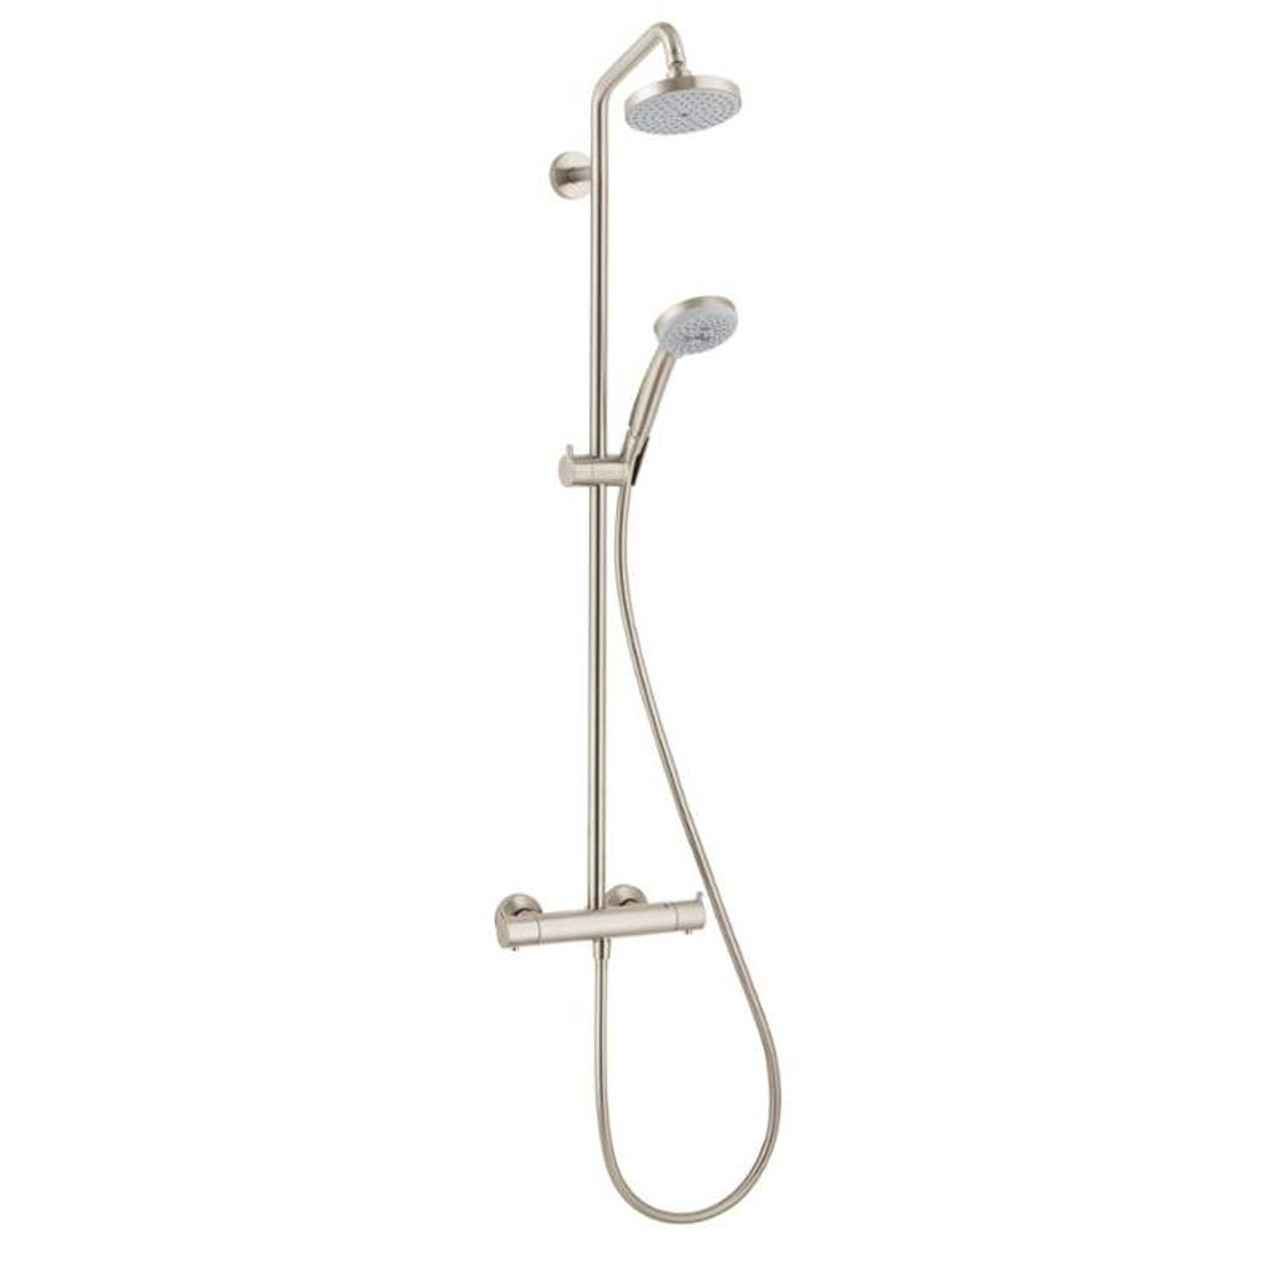 Hansgrohe 027169821 Croma Showerpipe Shower System With 1 75 Gpm Multi Funtion Hand Shower 63 In Hose And Shower Head